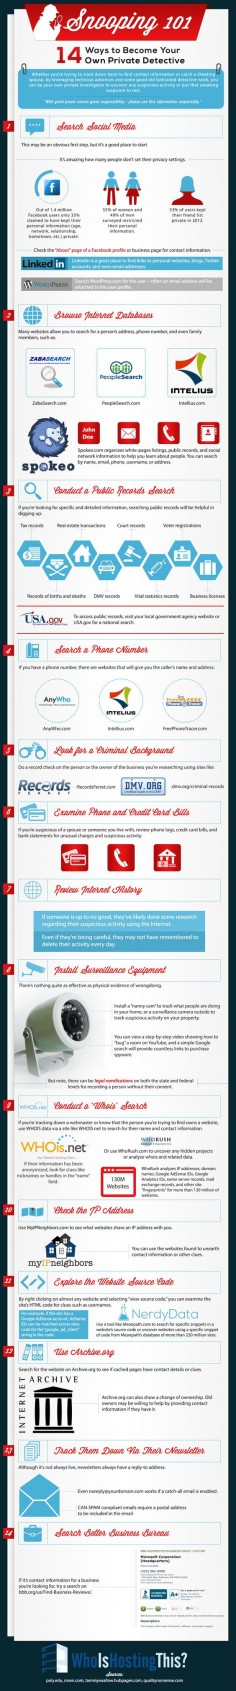 Snooping 101: How To Become Your Own Private Detective - infographic #ecommerce /